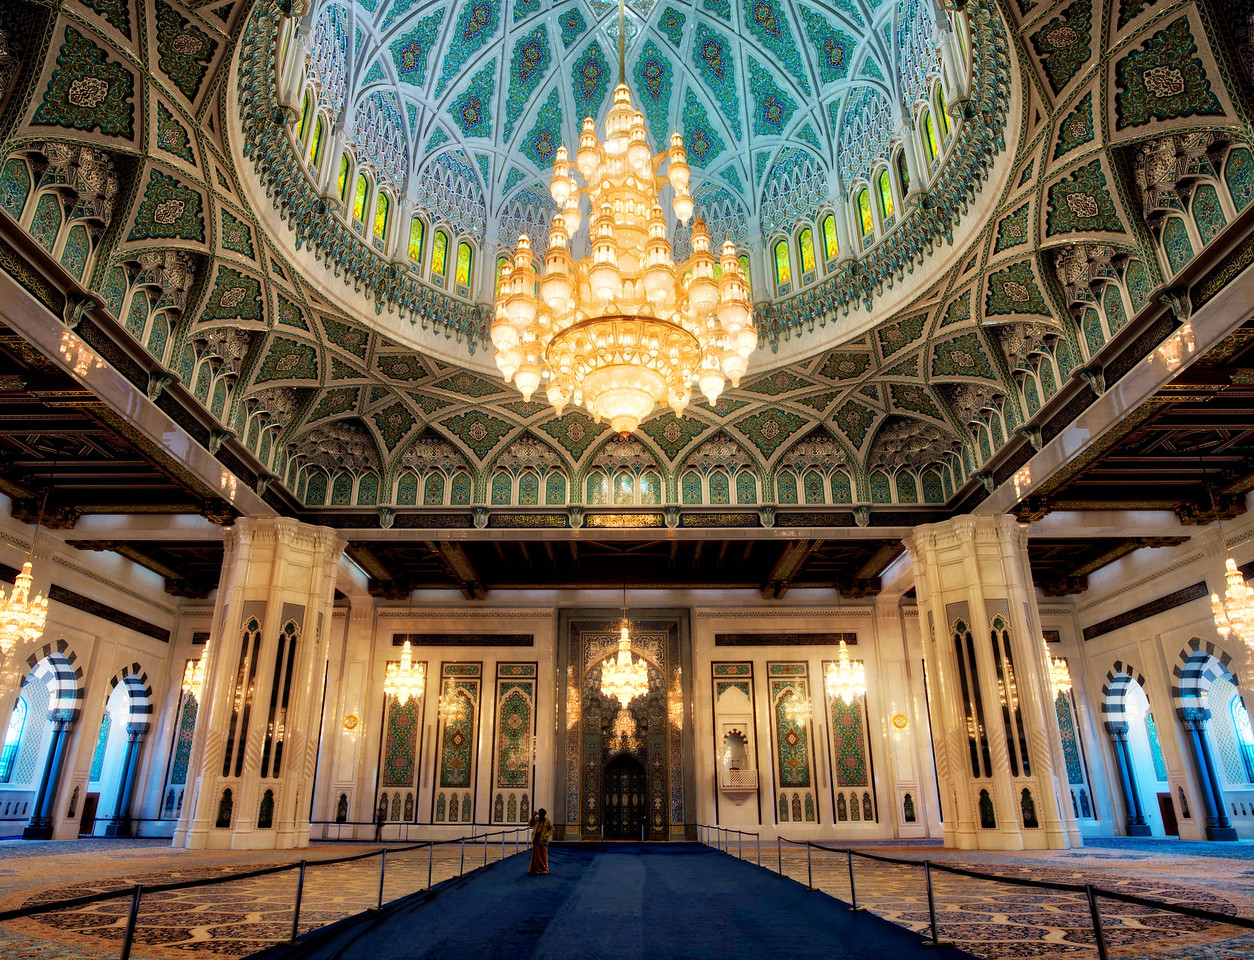 The incredible interior of the Grand Mosque